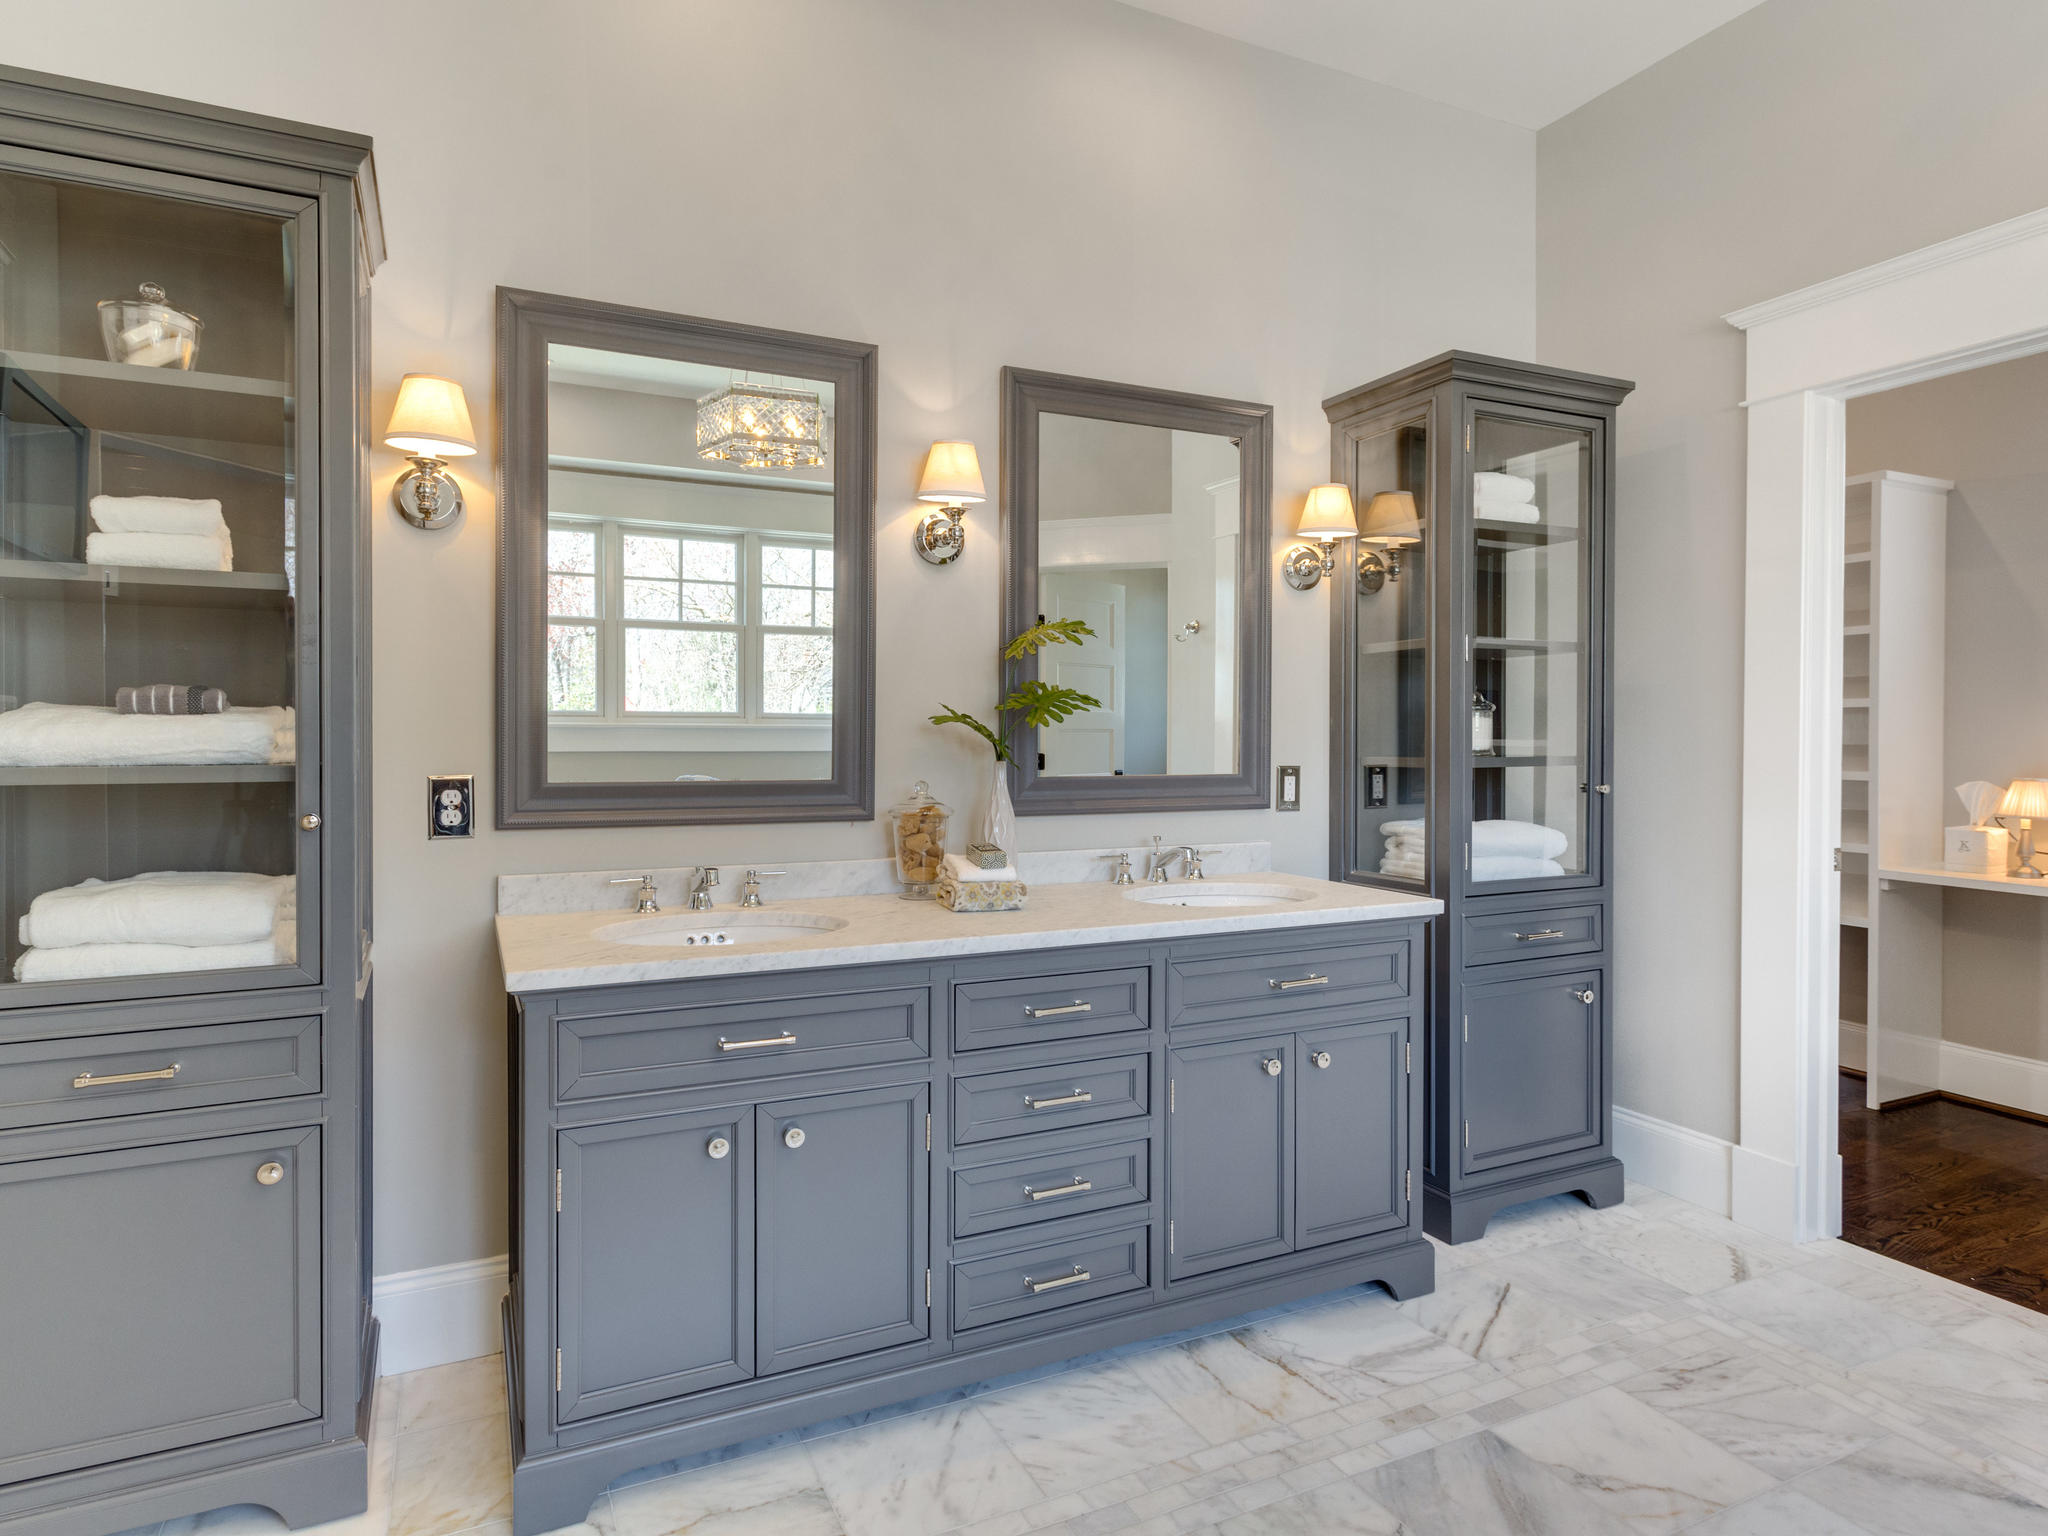 Master Bath Cabinets and towers. Custom Home by Custom Builder, North Arlington, VA 22207